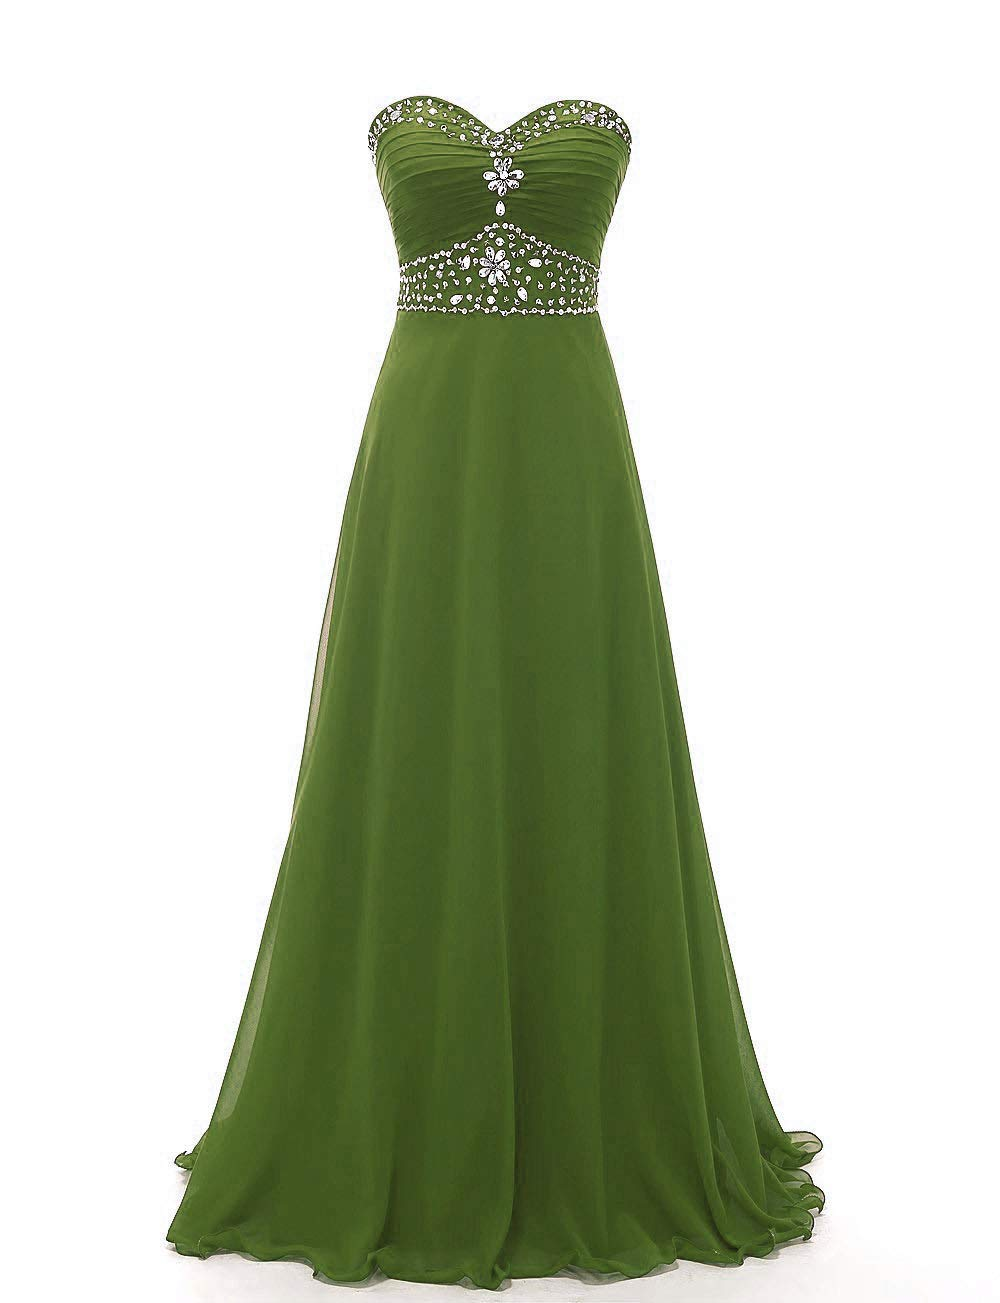 Country Bridesmaid Dresses Western Wedding Guest Dress Women S Floor Length Prom Olive Us8